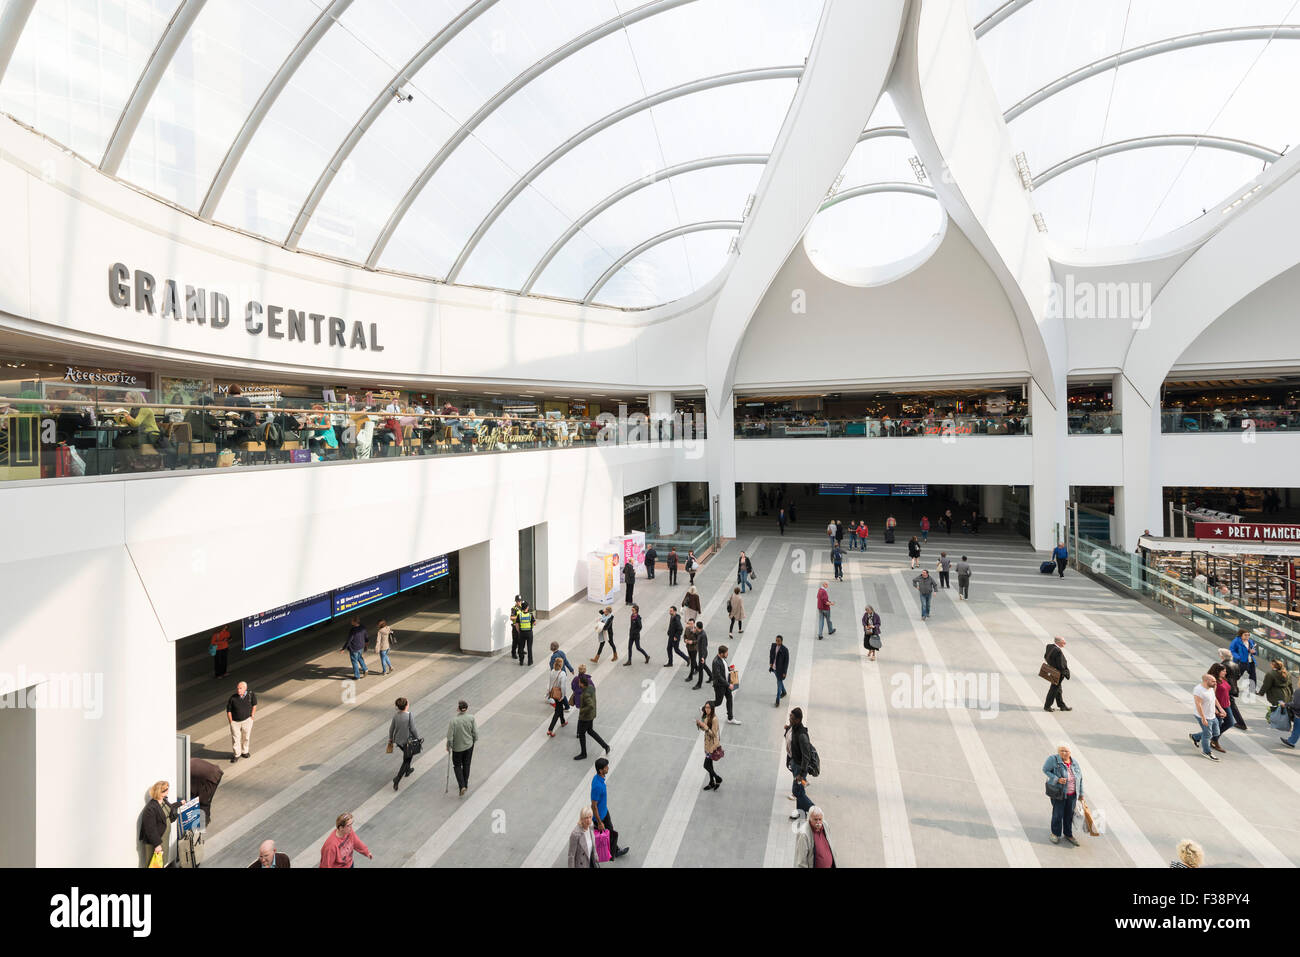 Grand Central at New Street Station, Birmingham - Stock Image